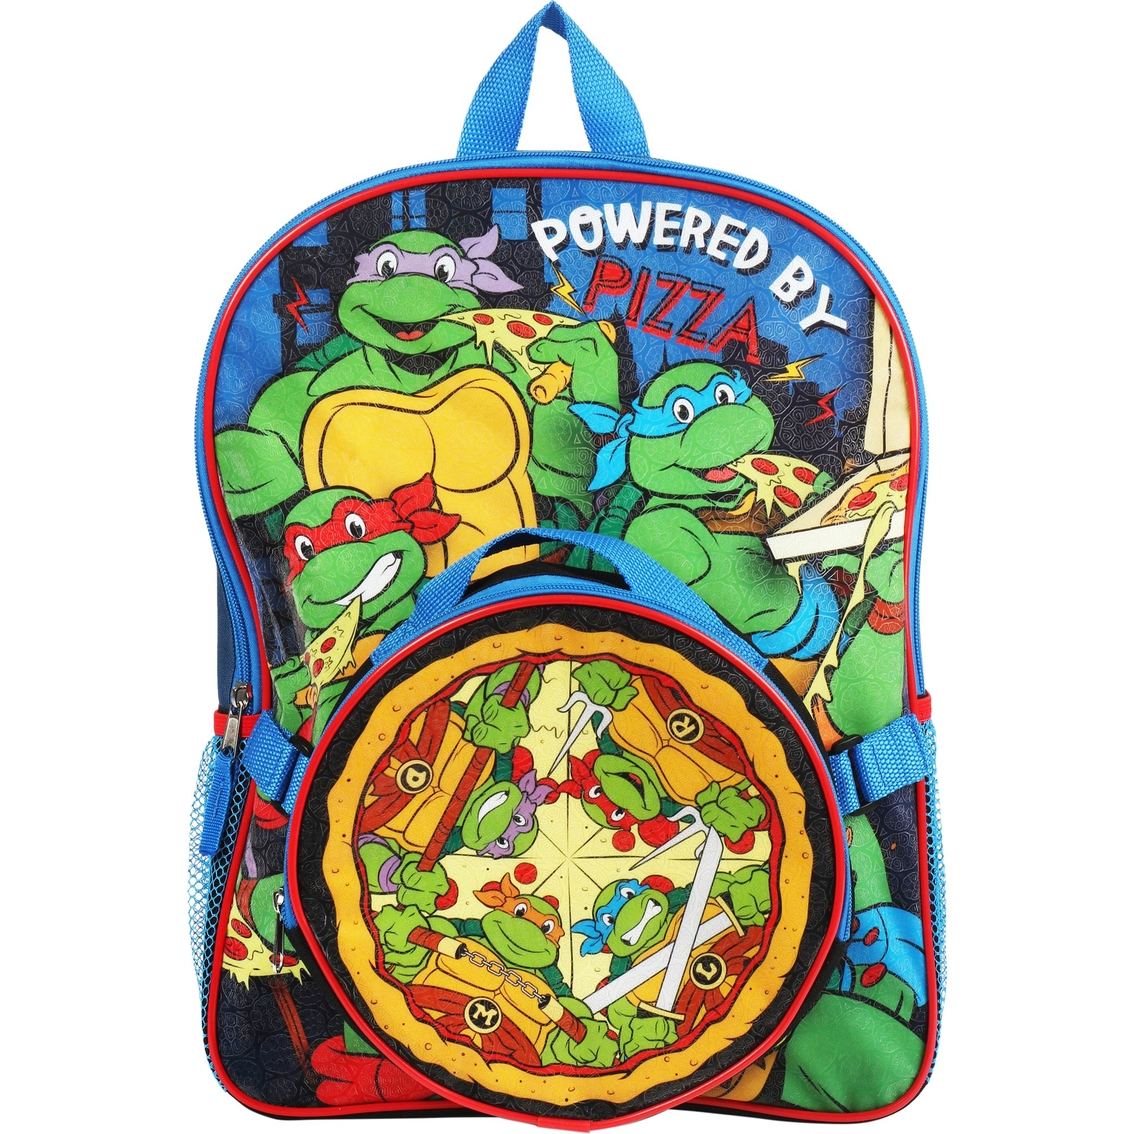 New Teenage Mutant Ninja Turtles Boys Green Backpack Rucksack Travel School Bag High Quality Materials Backpacks & Bags Clothing, Shoes & Accessories